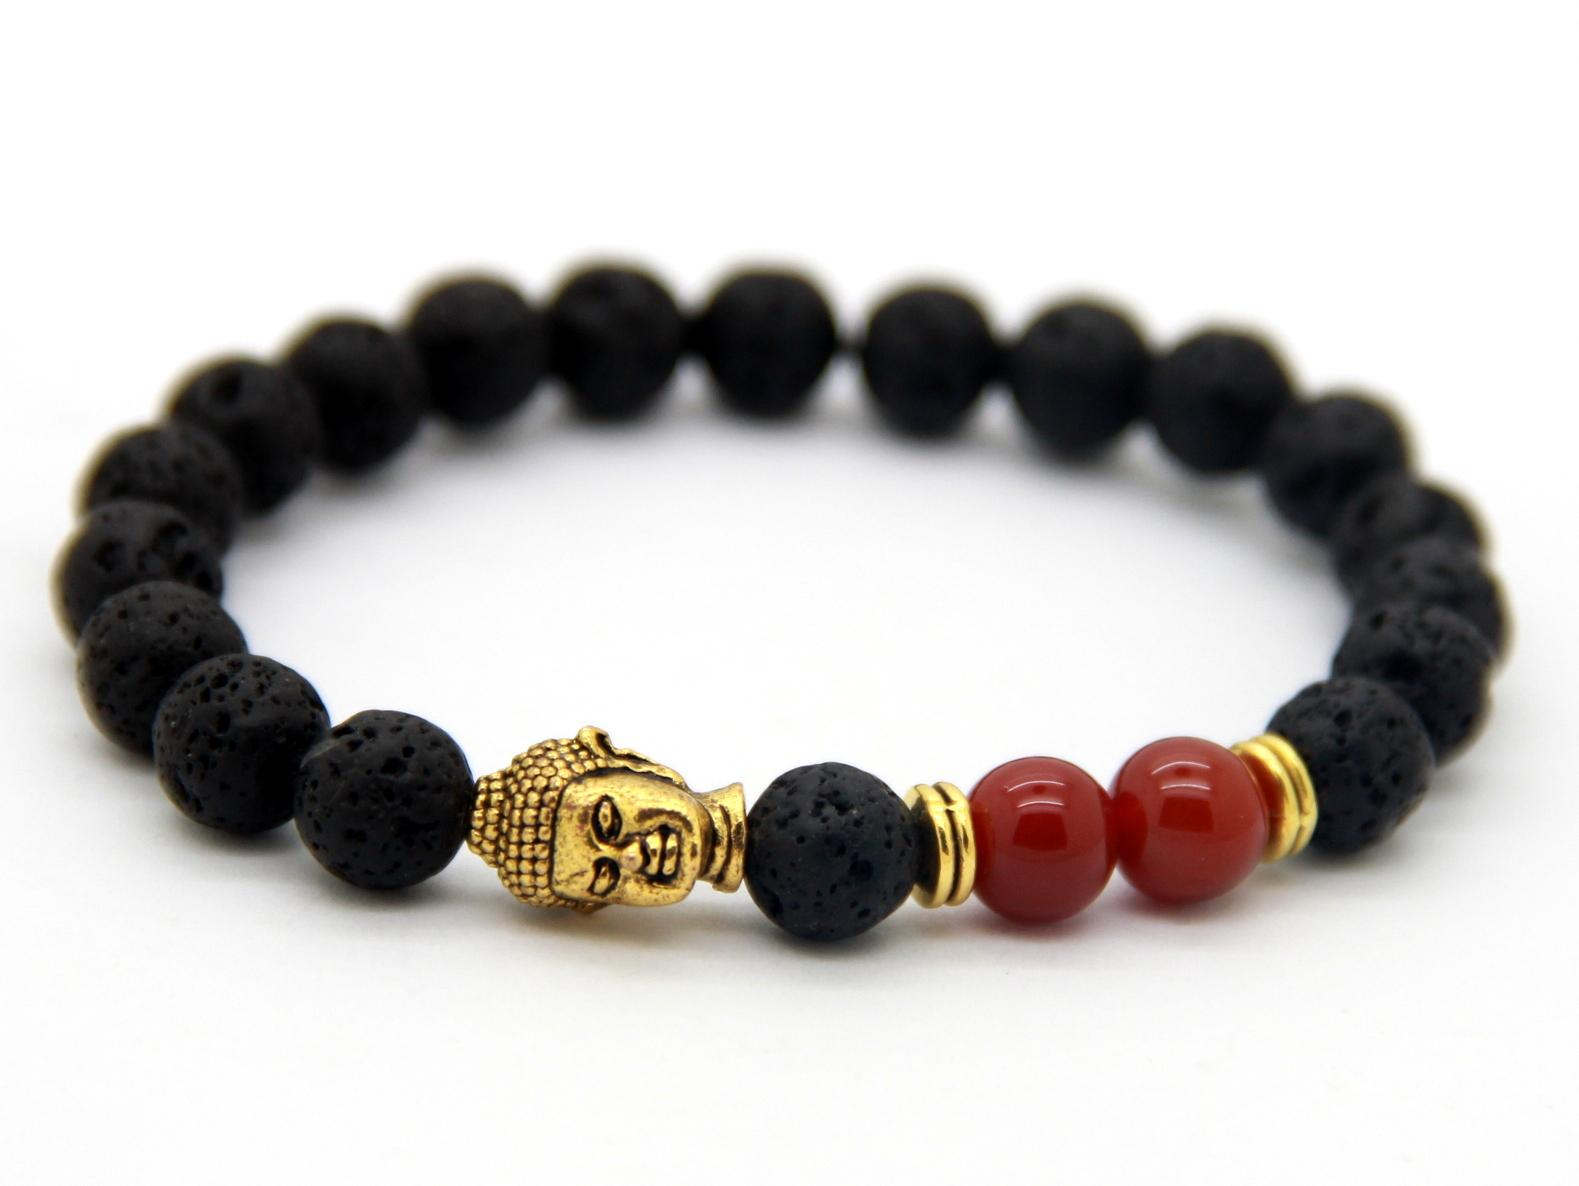 Hot Sale Jewelry Wholesale 8mm Lava Stone Beads Red Agate Beads With  Antique Gold Buddha Men's Bracelets Gift Men Bracelet Buddha Bracelet Lava  Stone